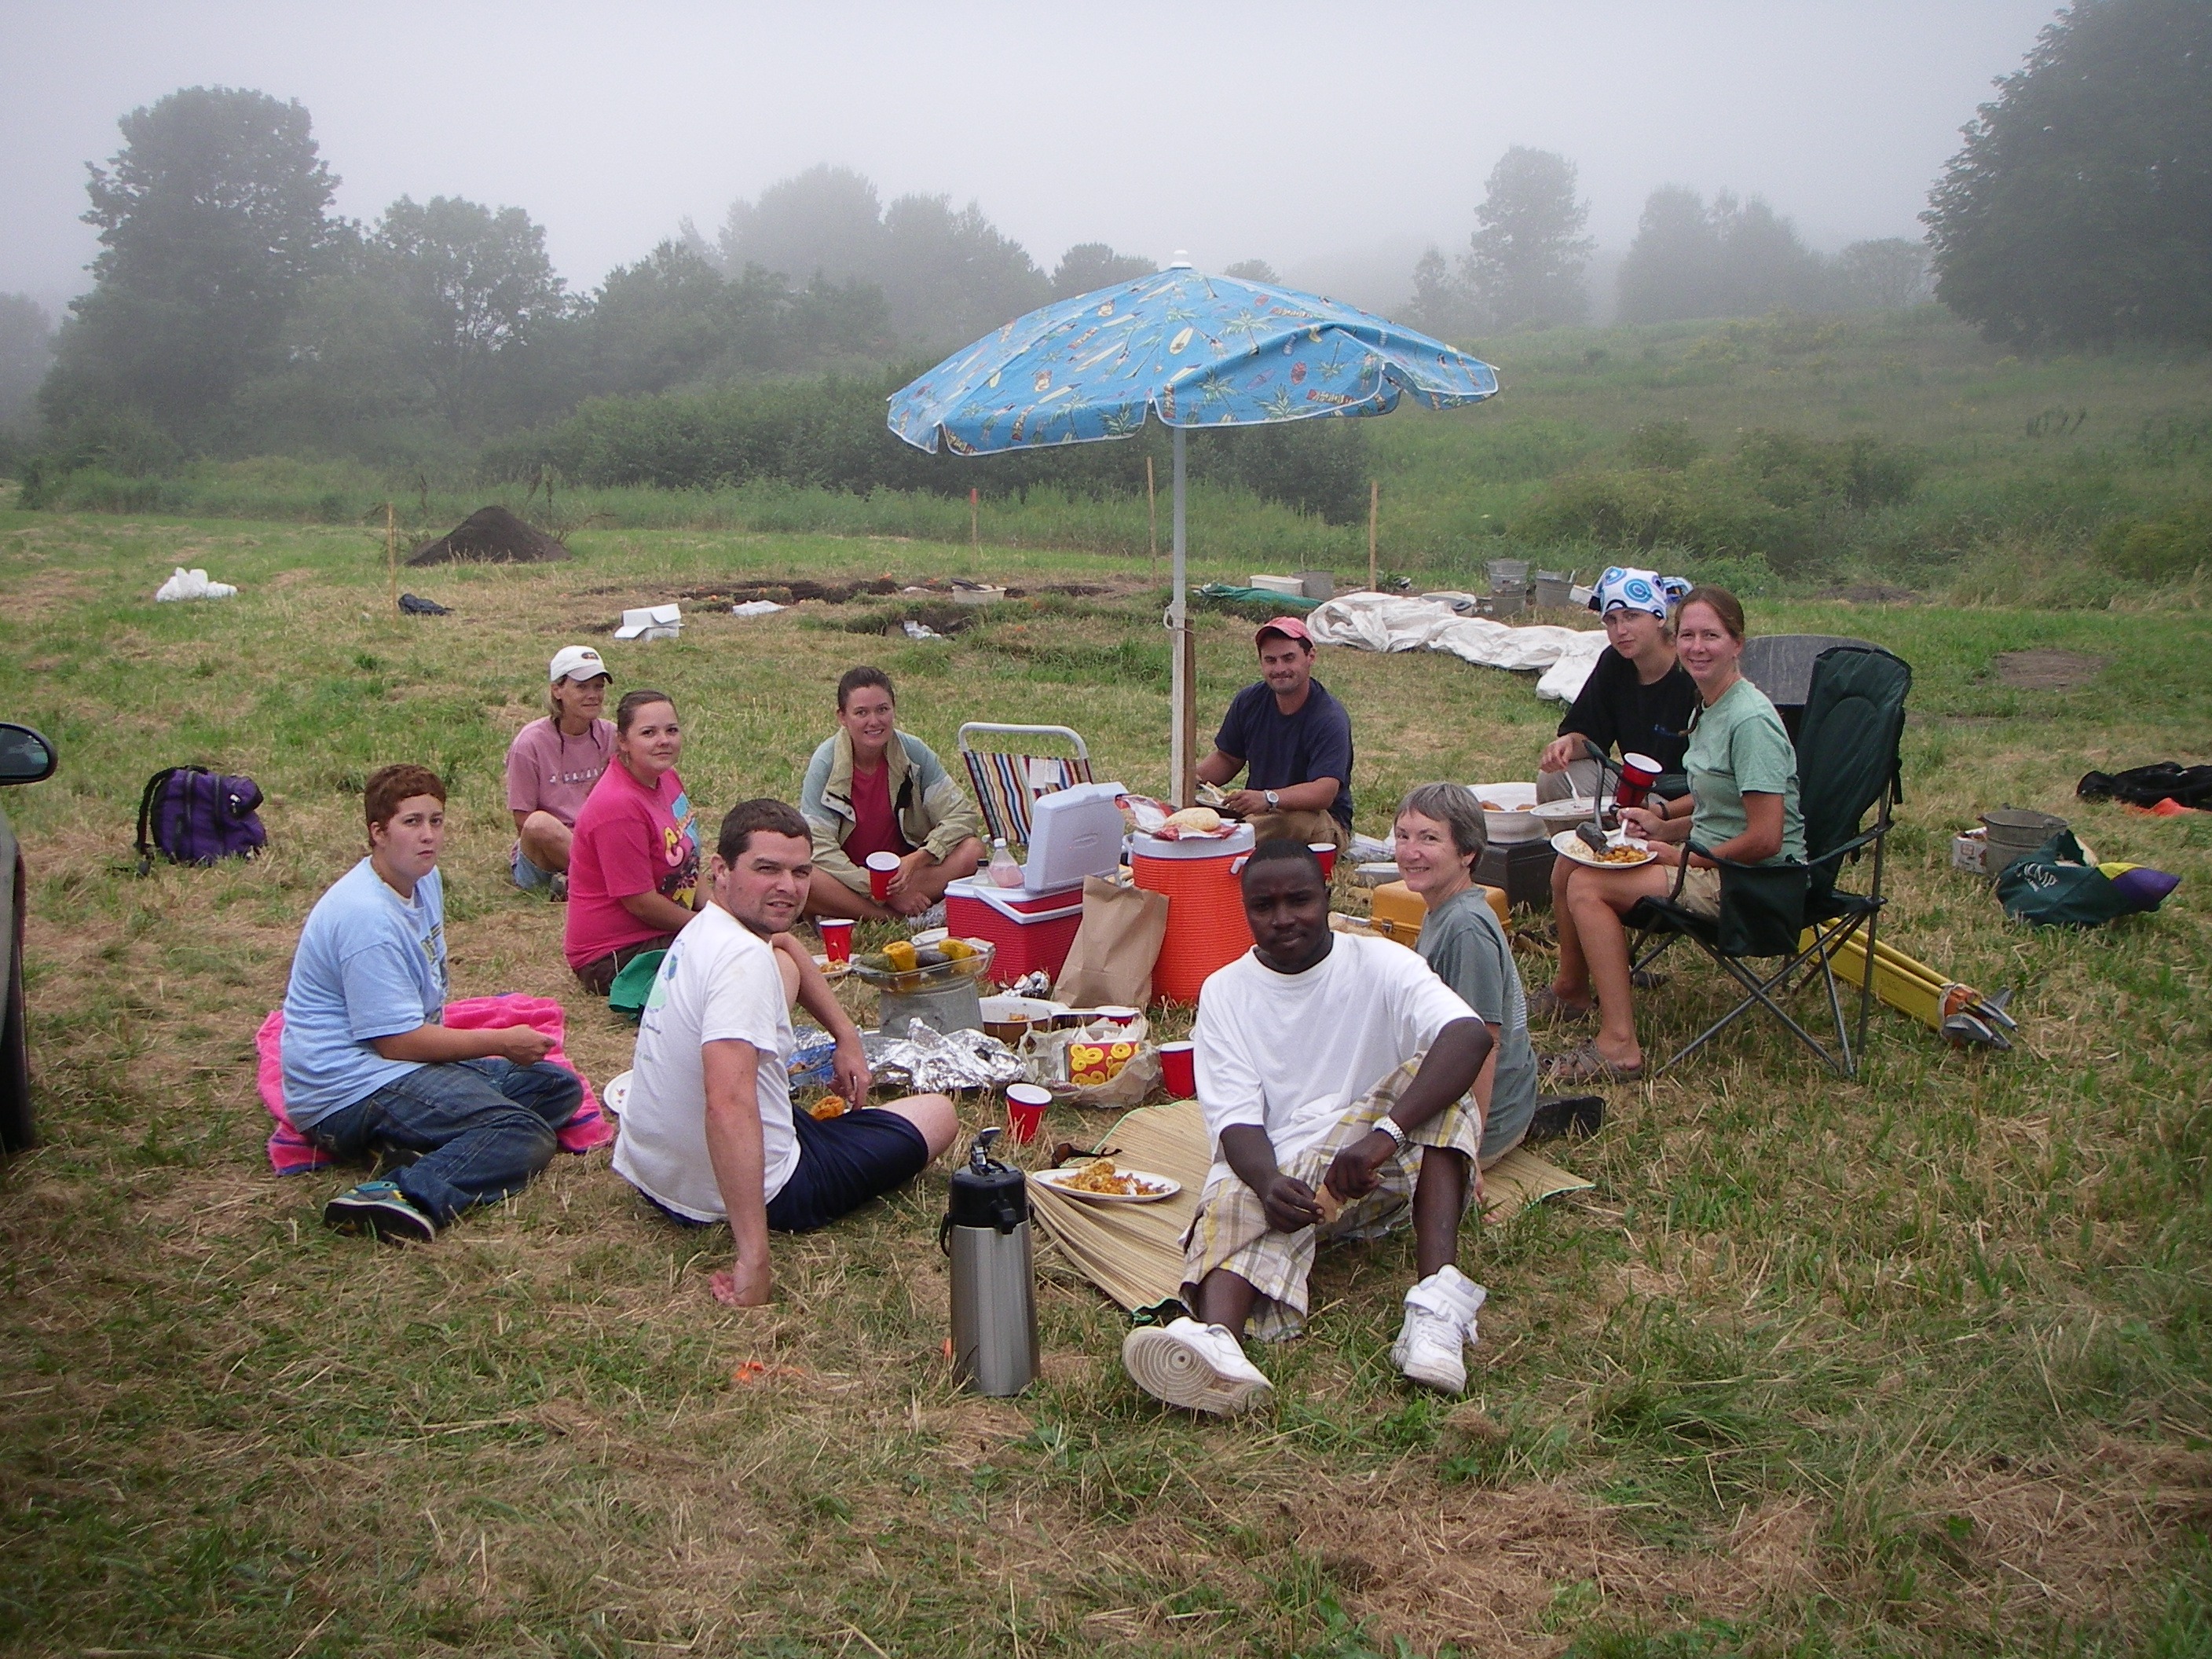 Dig into history than dig into lunch by taking part in an archeological program at Pemaquid Falls, Maine.